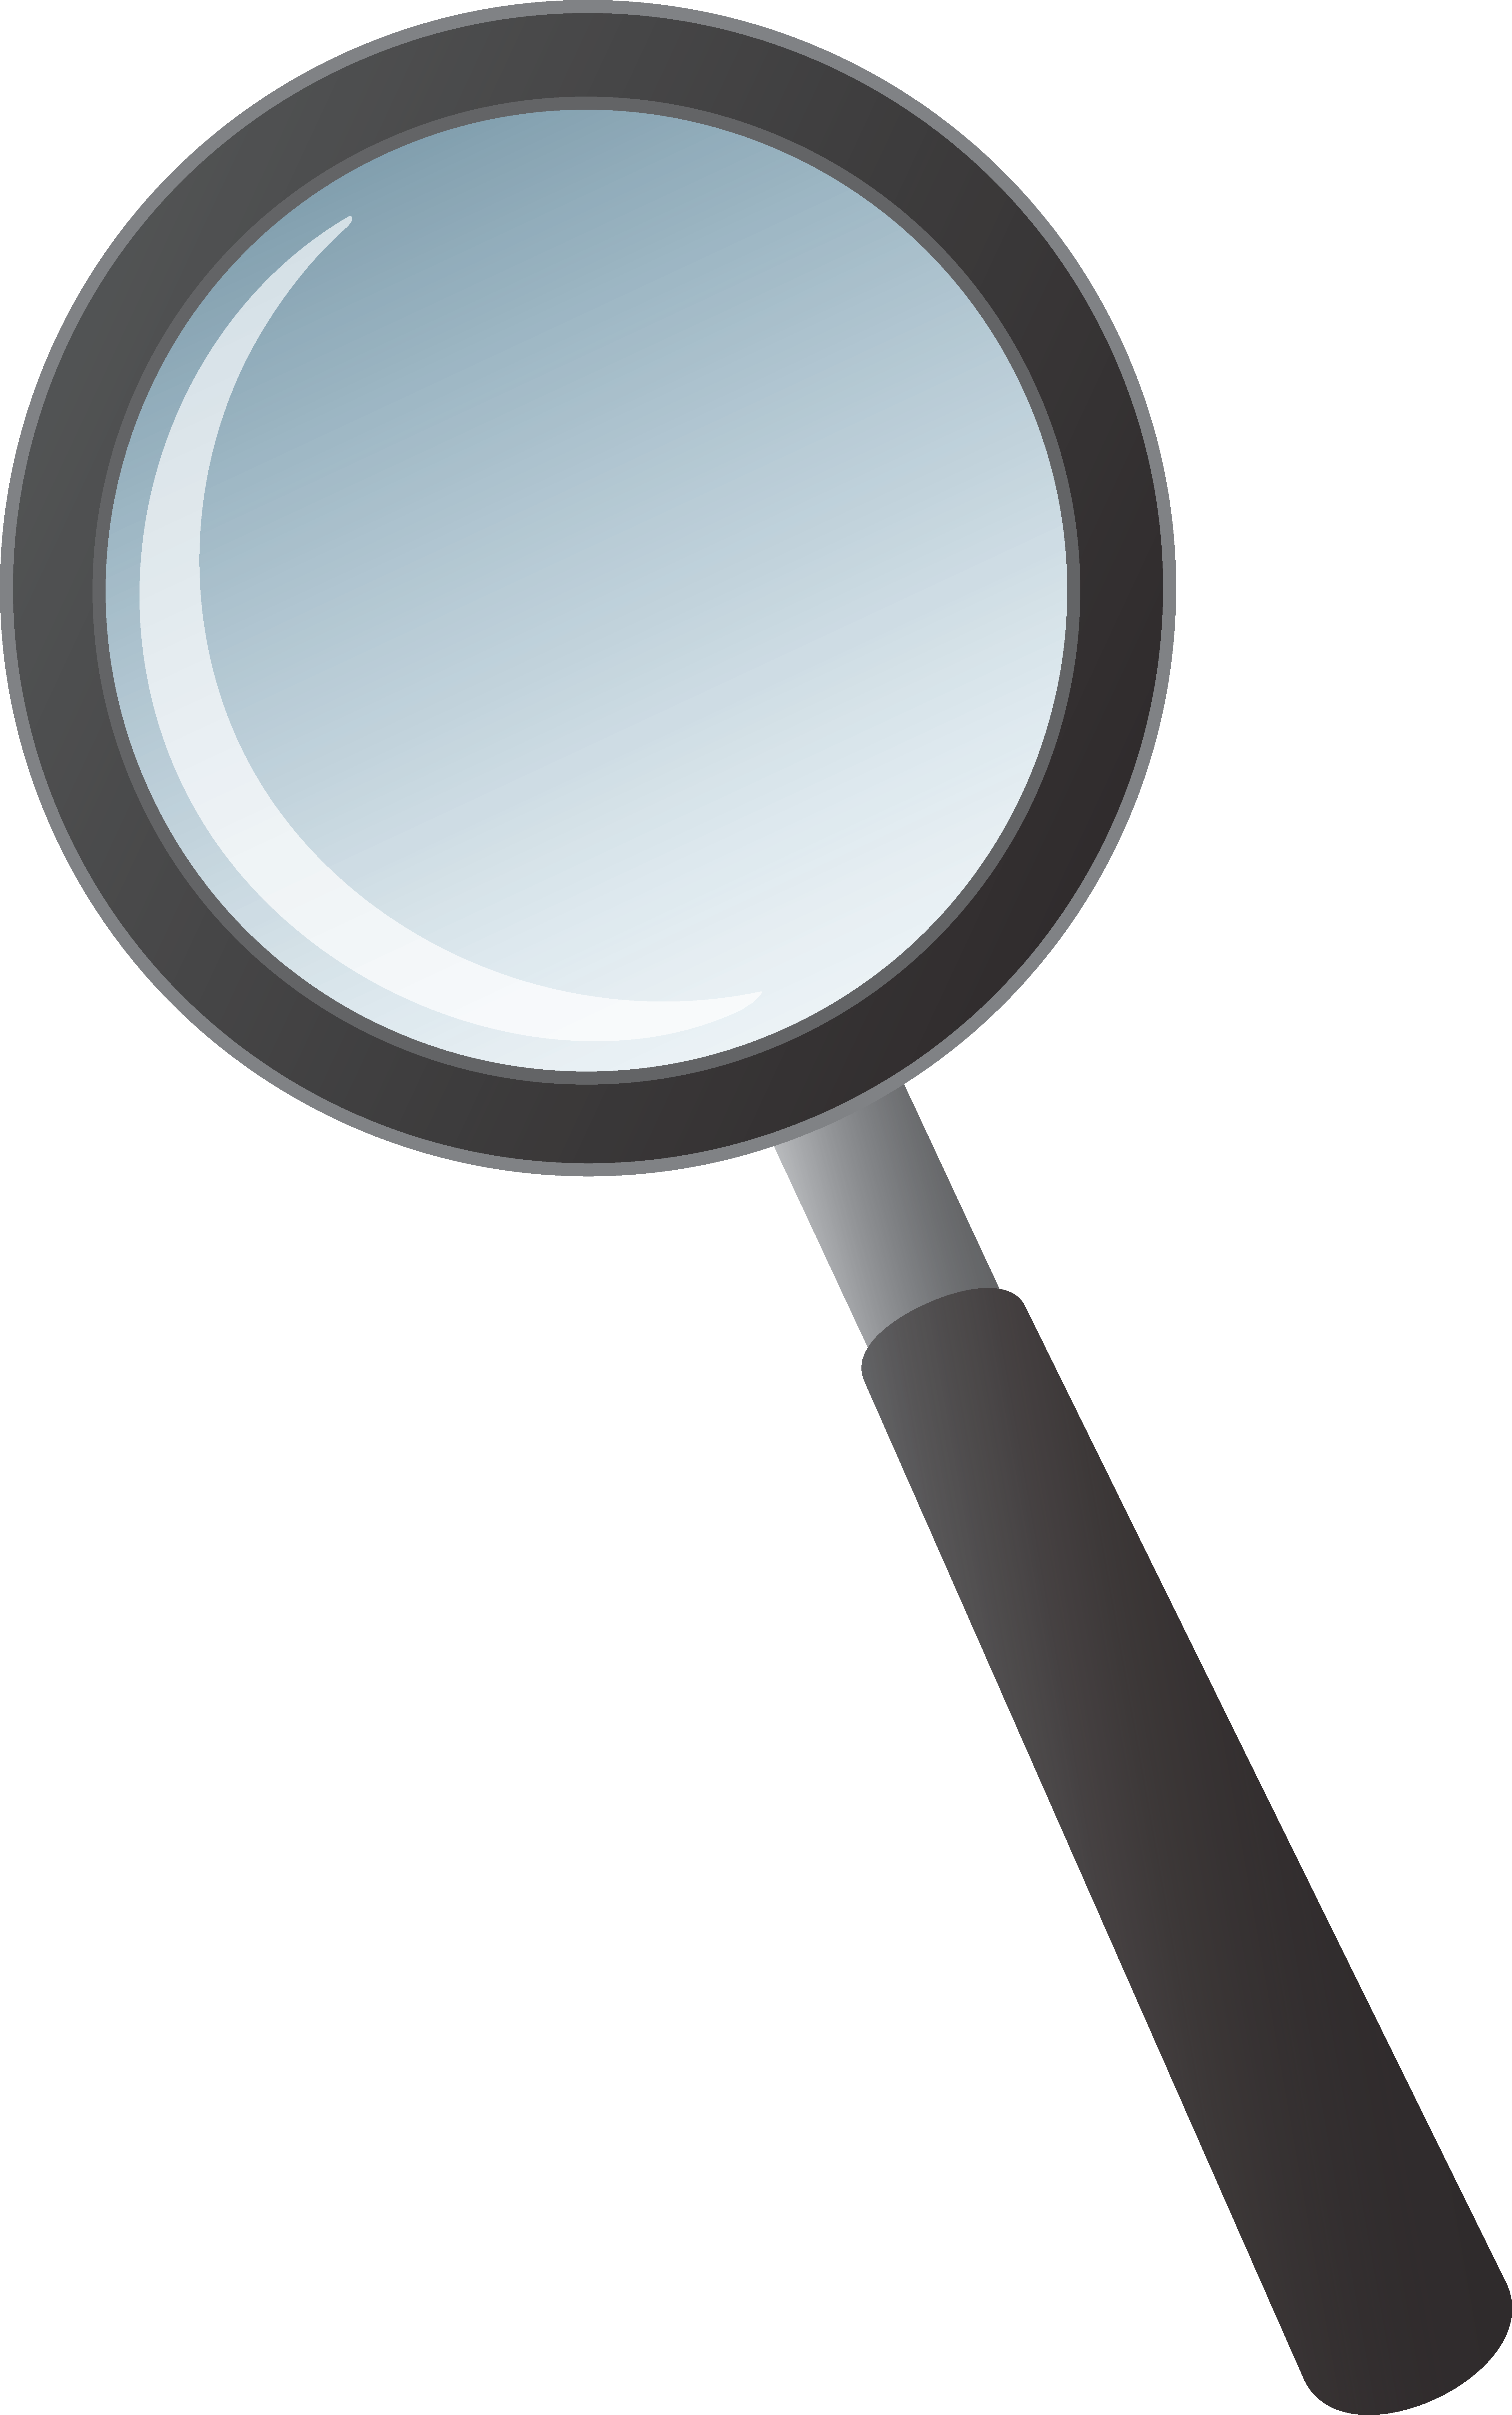 Magnifying glass clip art. Mirror clipart free vector